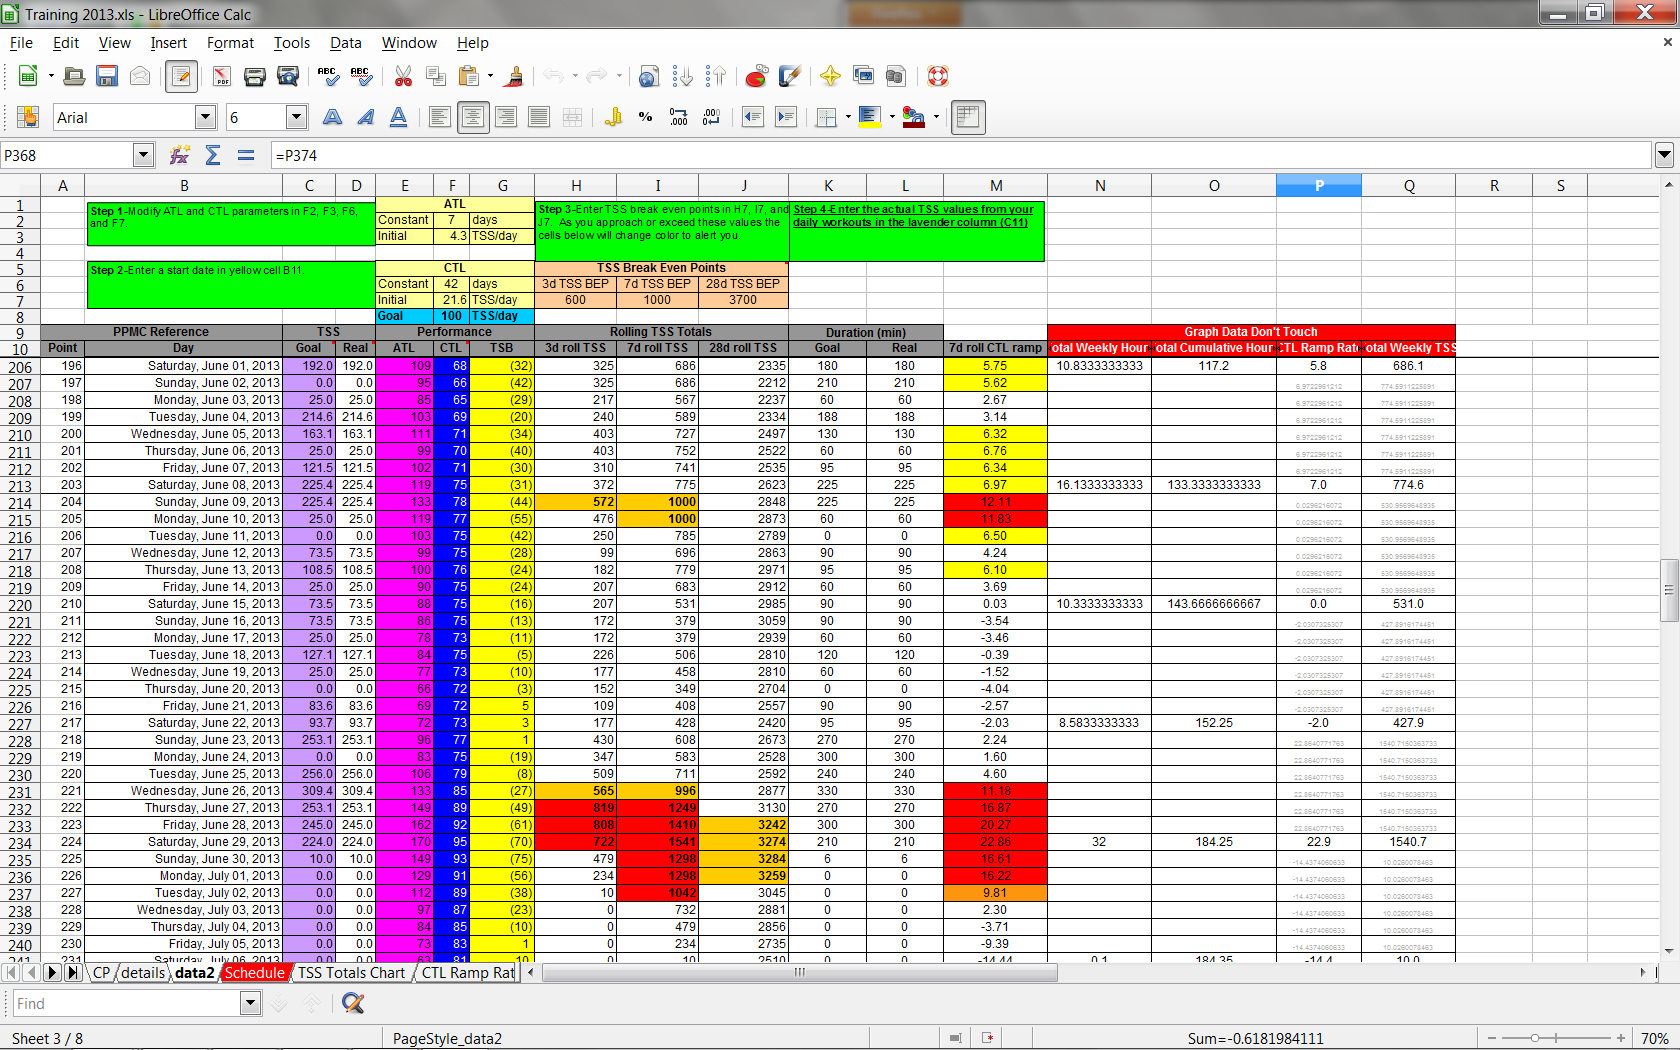 Excel Spreadsheet Training Courses For Microsoft Excel Spreadsheet Training On Excel Spreadsheet Templates